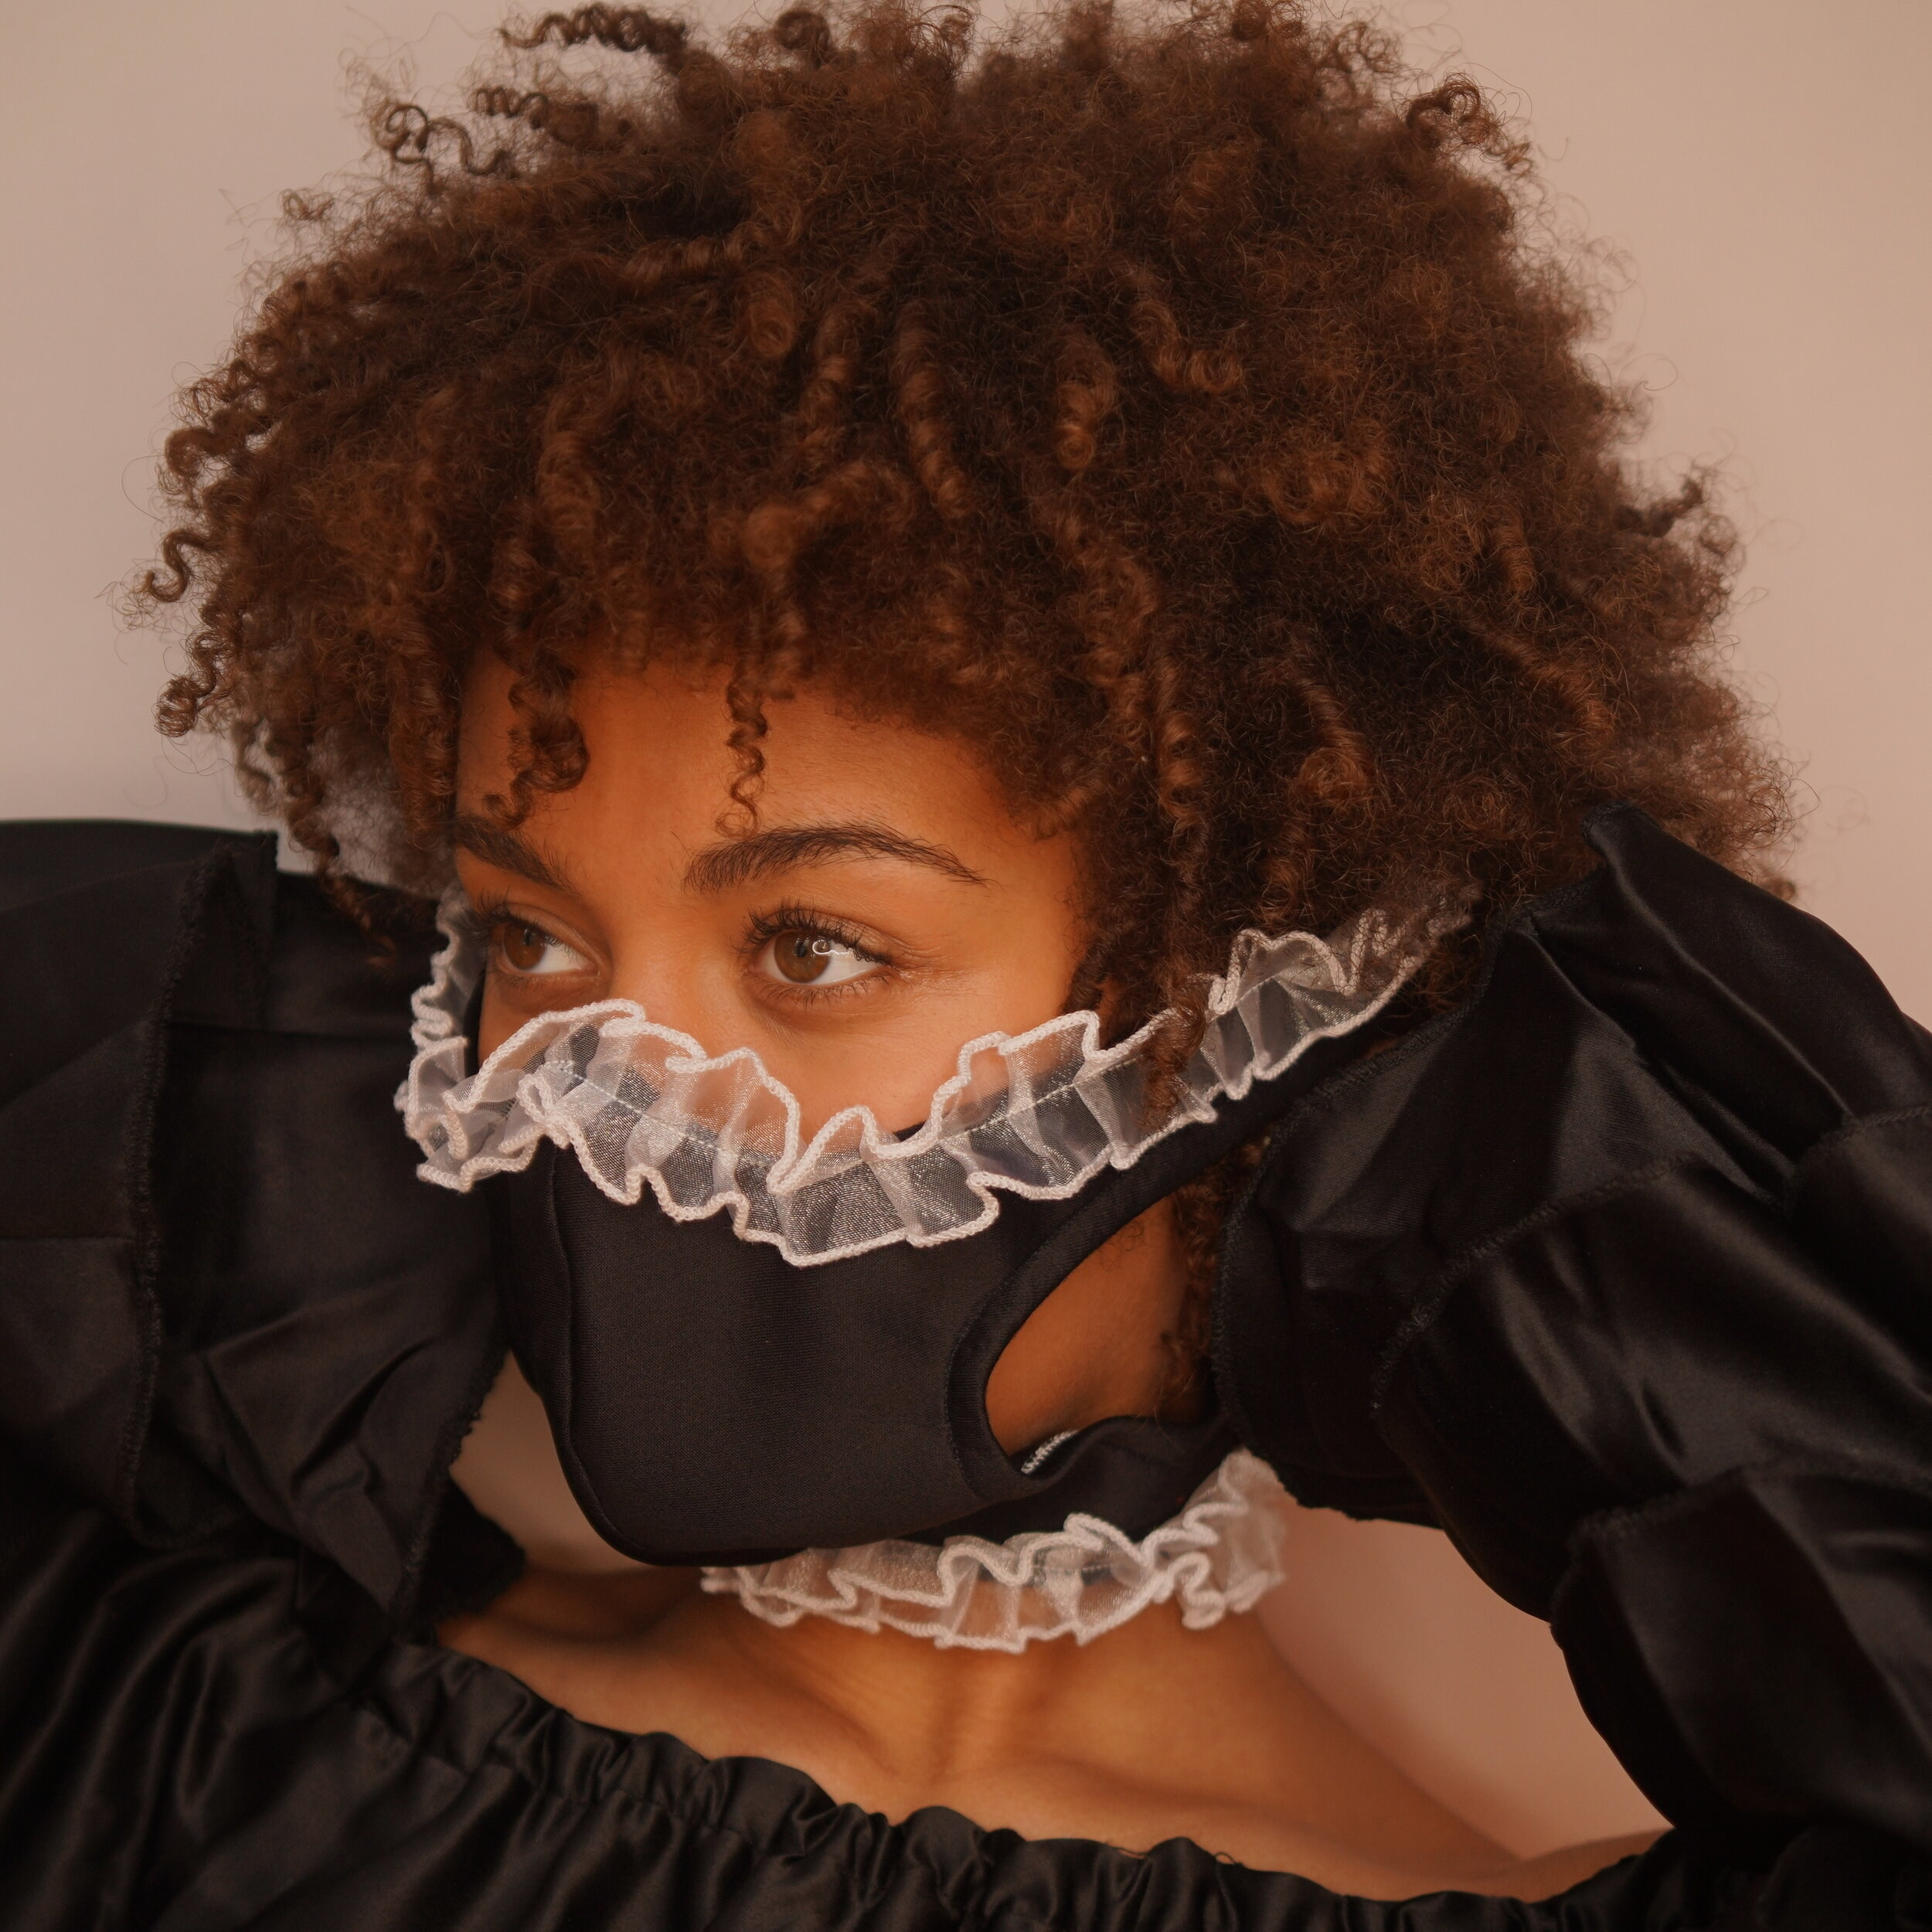 model wearing a black face mask with white ruffles as an accent